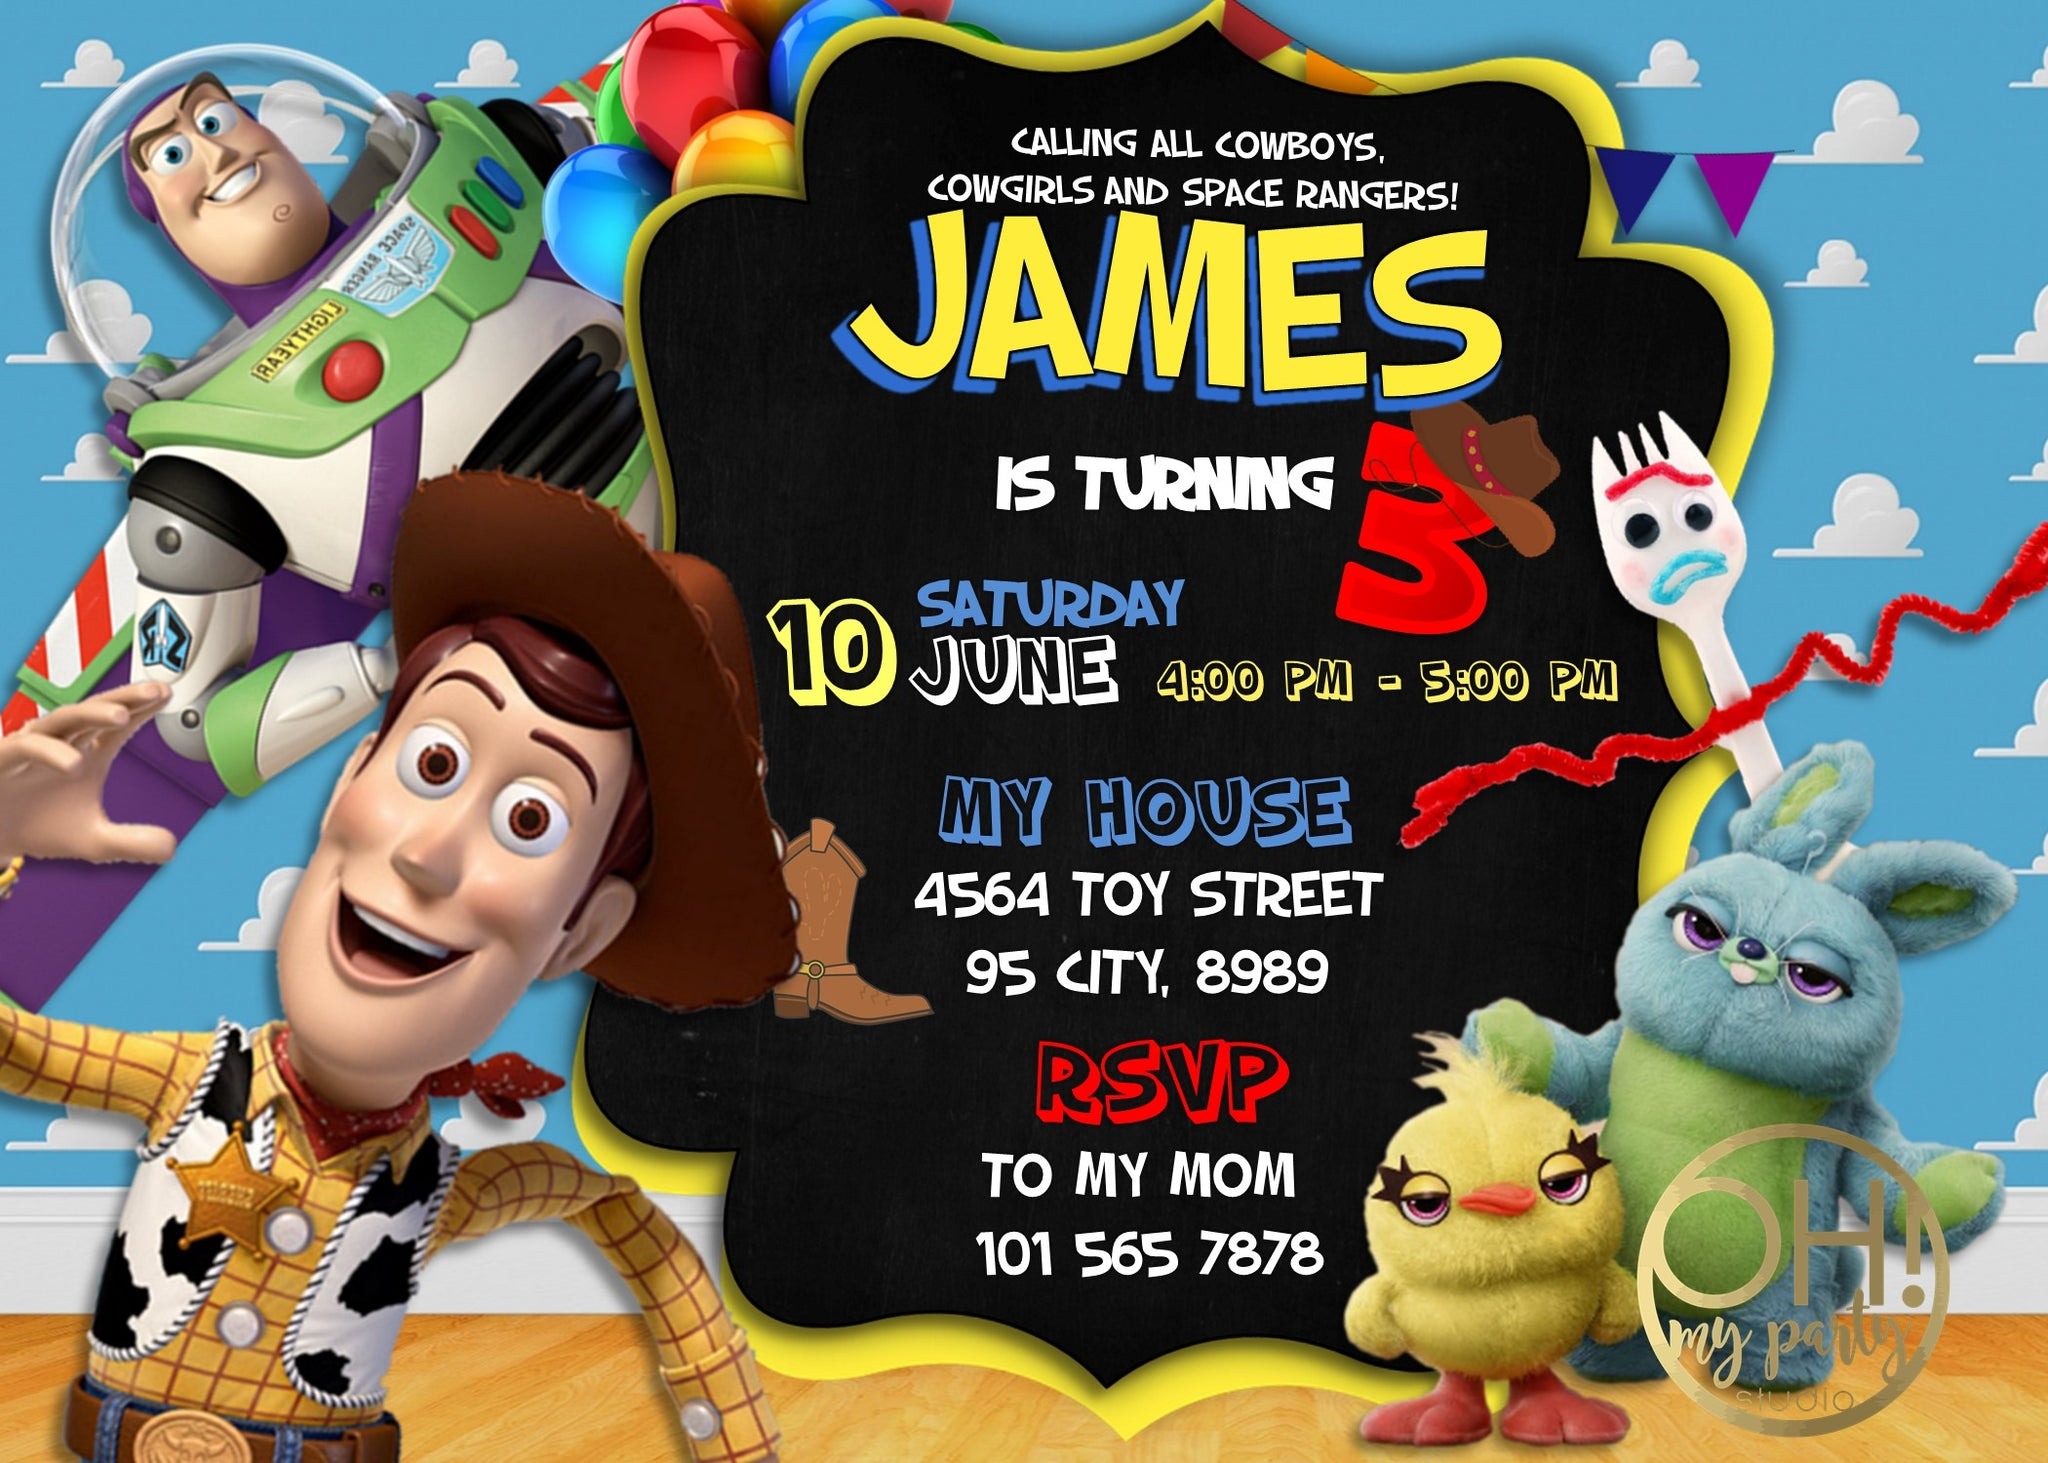 TOY STORY 4 BIRTHDAY INVITATION, TOY STORY BIRTHDAY INVITATION, TOY STORY PARTY, TOY STORY BIRTHDAY, TOY STORY BIRTHDAY PARTY,TOY STORY 4 PARTY IDEAS, TOY STORY 4 BIRTHDAY PARTY, TOY STORY 4 INVITE, TOY STORY 4 INVITATIONS, TOY STORY 4 BIRTHDAY PARTY INVITATIONS, TOY STORY 4 FAVORS, TOY STORY 4 DECORATIONS, TOY STORY 4 PARTY DECORATIONS, TOY STORY 4 INVITACIONES, TOY STORY 4 INVITACION, TOY STORY 4 INVITATION PRINTABLE, TOY STORY 4 BIRTHDAY, TOY STORY 4 PARTY